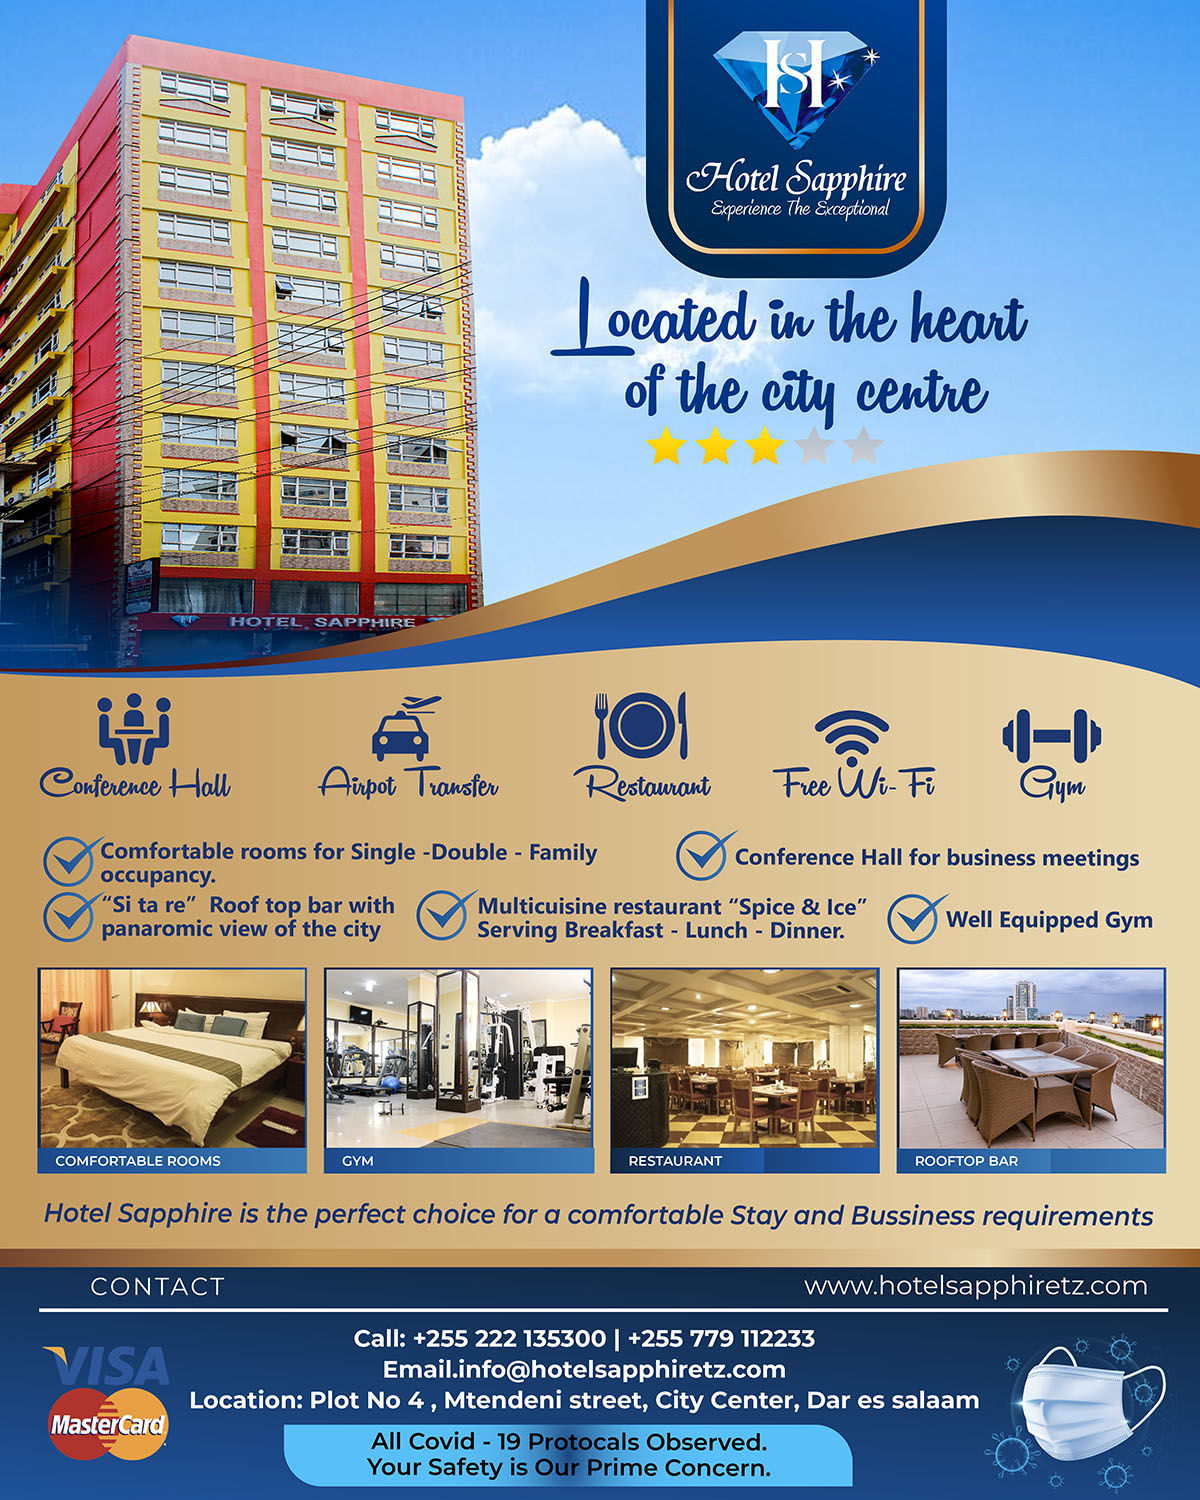 Hotel-Sapphire-located-in-the-heart-of-the-city-centre